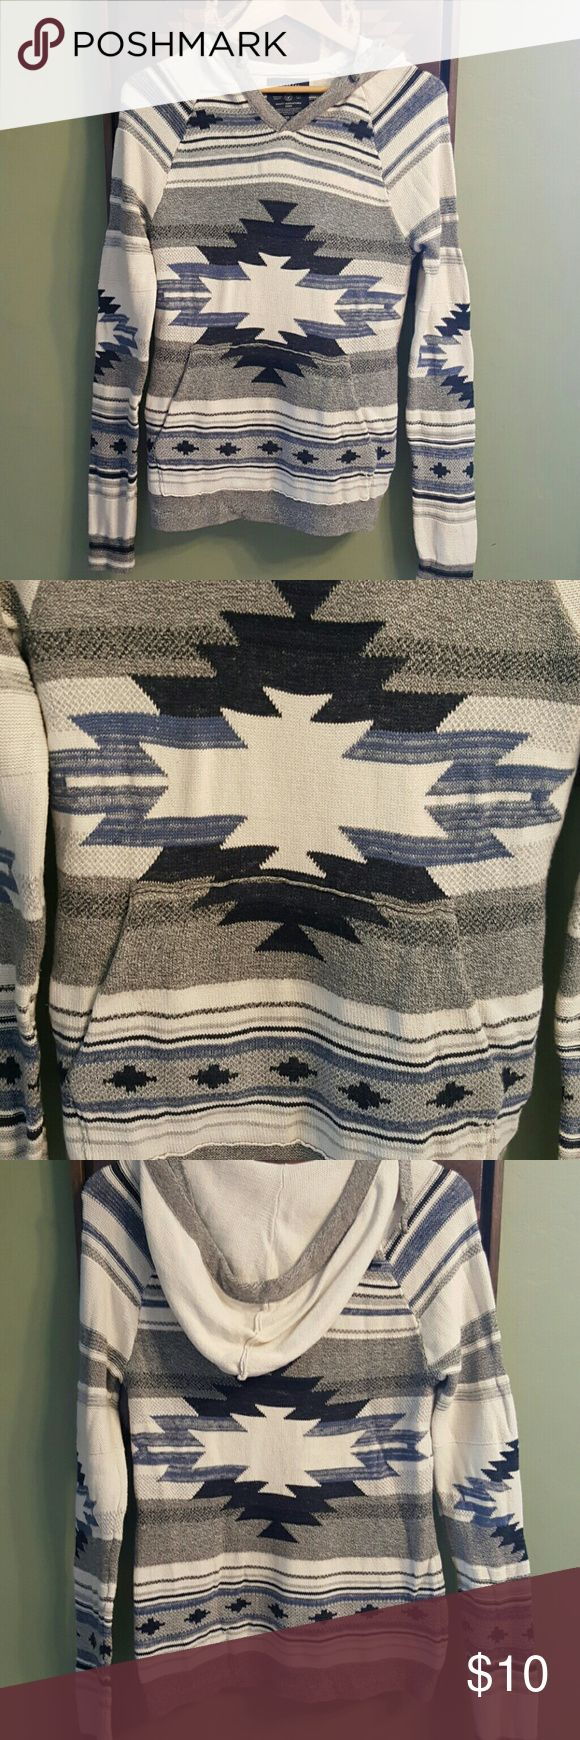 AMERICAN EAGLE AZTEC HOODIE Mens size XS = WOMENS SIZE MEDIUM. Aztec print hoodie. Soft and comfortable. American Eagle Outfitters Tops Sweatshirts & Hoodies